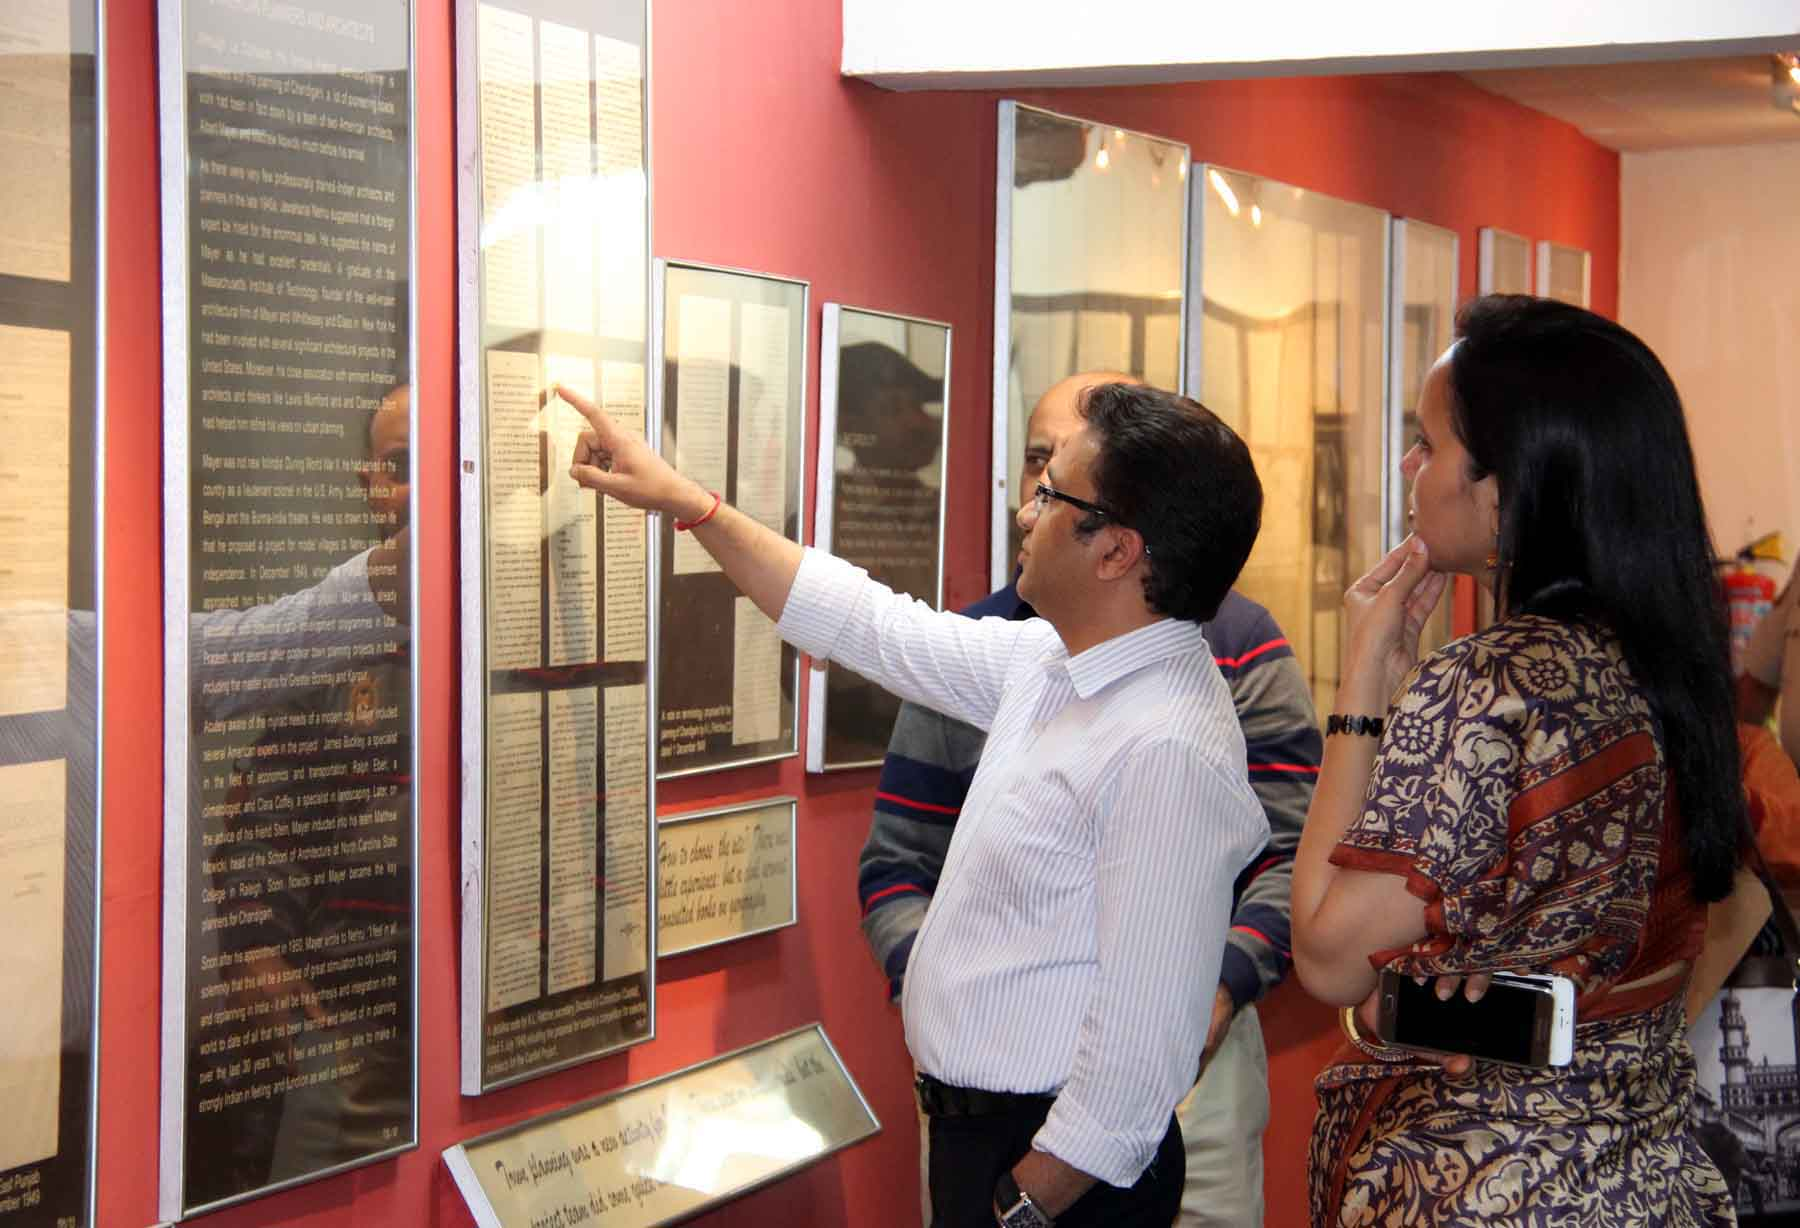 UT Home Secretary, Mr. Anurag Agarwal alongwith senior officers visiting Chandigarh Architecture Museum at Govt. Museum & Art Gallery, Sector-10, Chandigarh on Friday, March 27, 2015.